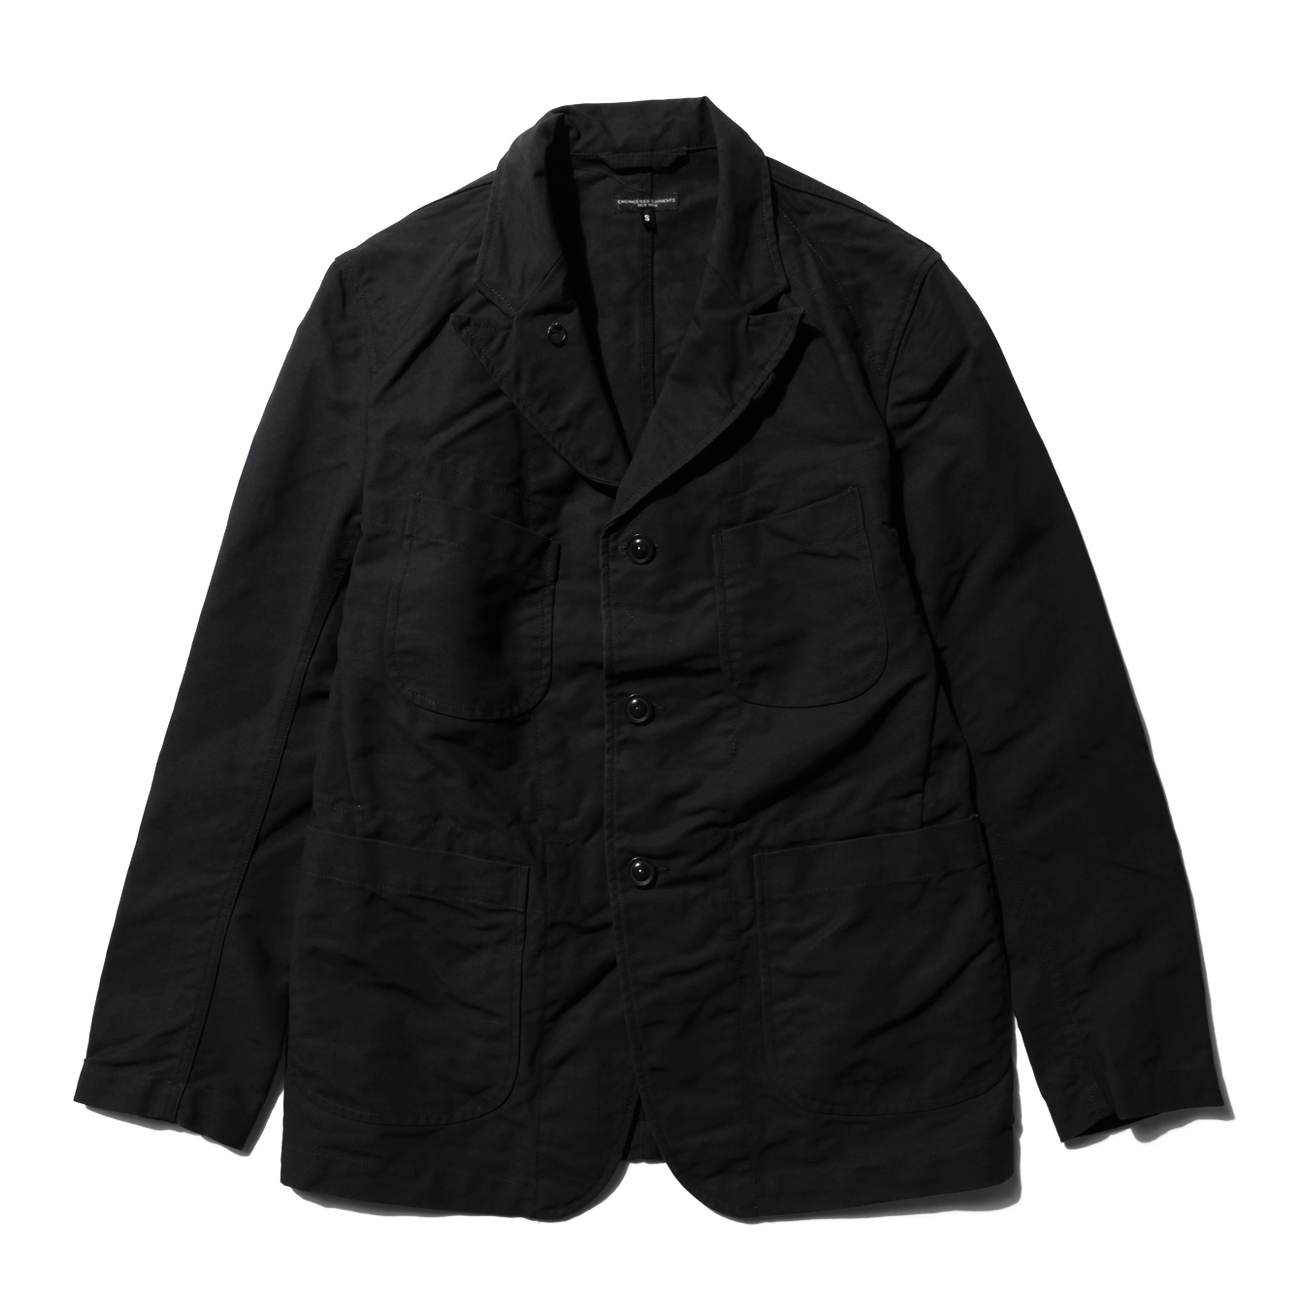 ENGINEERED GARMENTS - Bedford Jacket - Cotton Double Cloth - Black